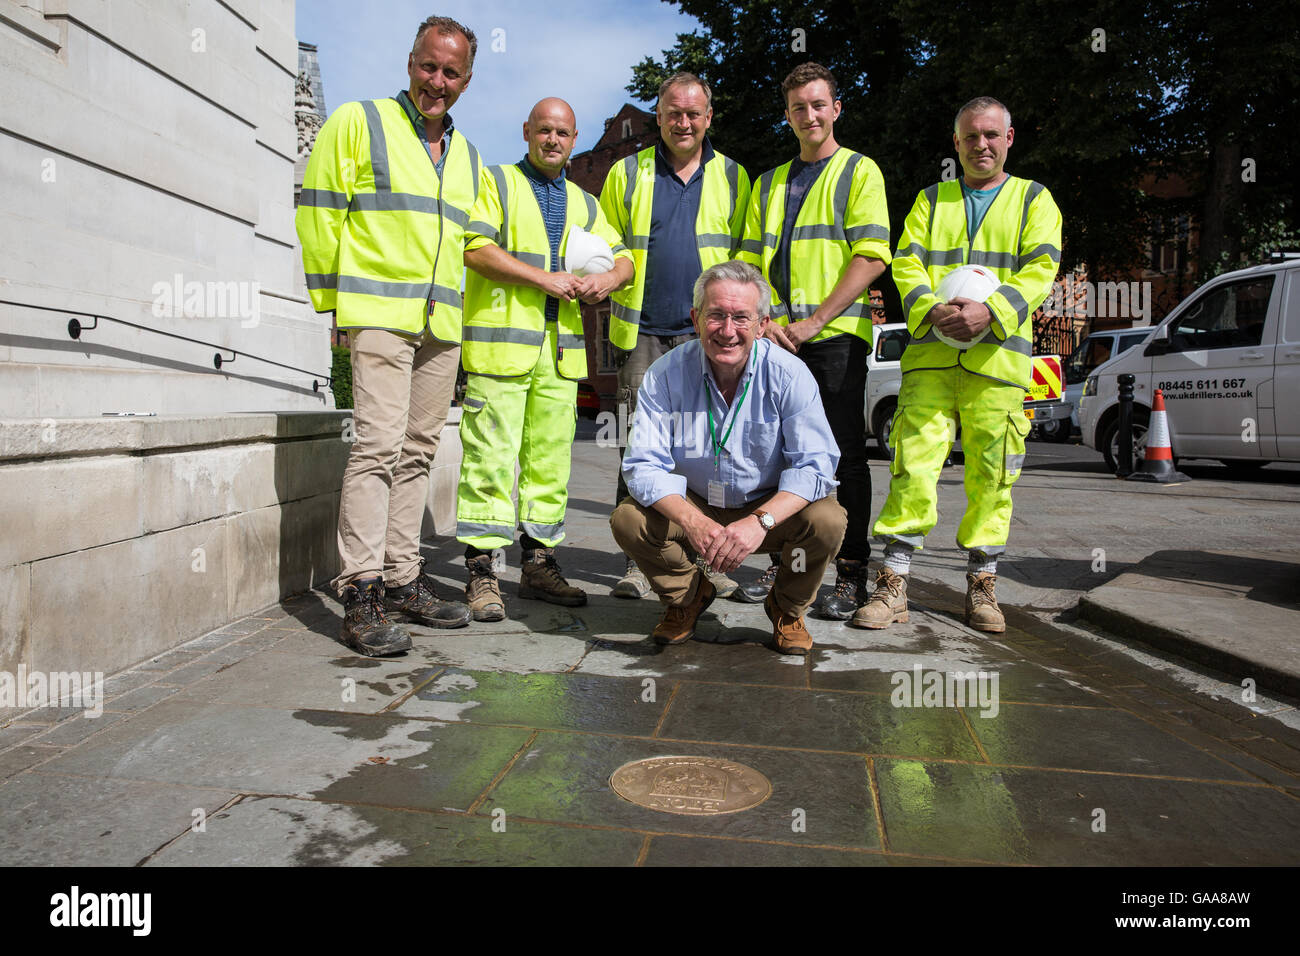 Eton, UK. 5th August, 2016. The Curator of the Eton College Natural History Museum George Fussey (crouching) poses - Stock Image